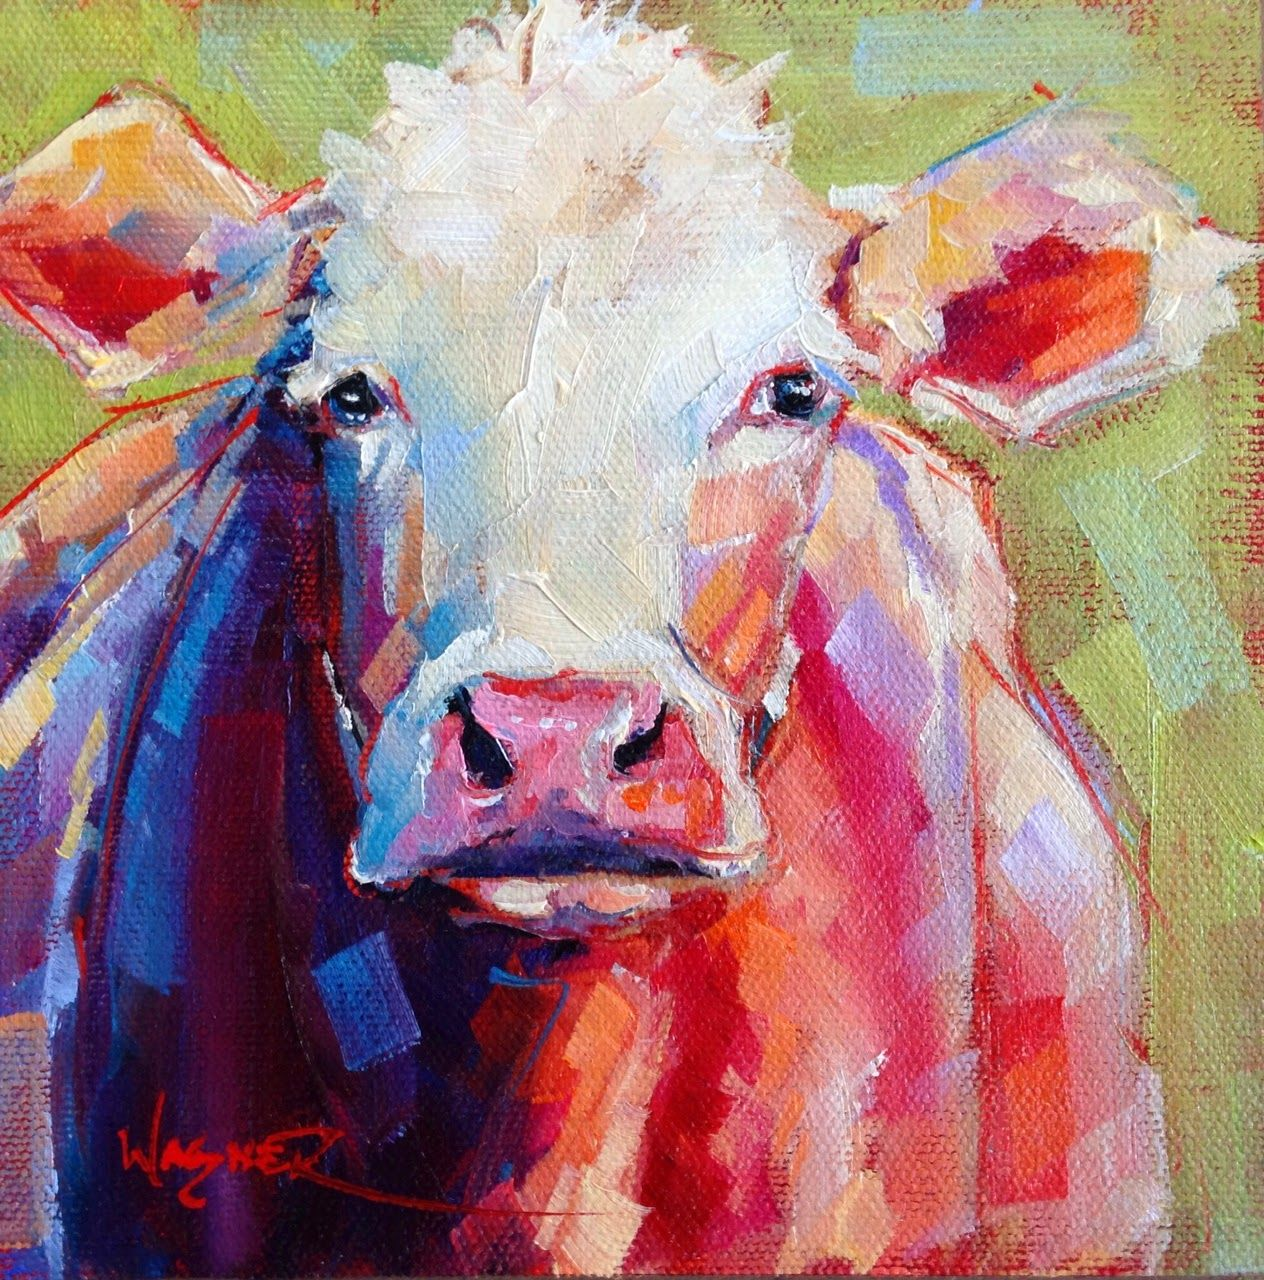 Kuh Malen Olga Paints Sold Contemporary Cow Painting In Oils By